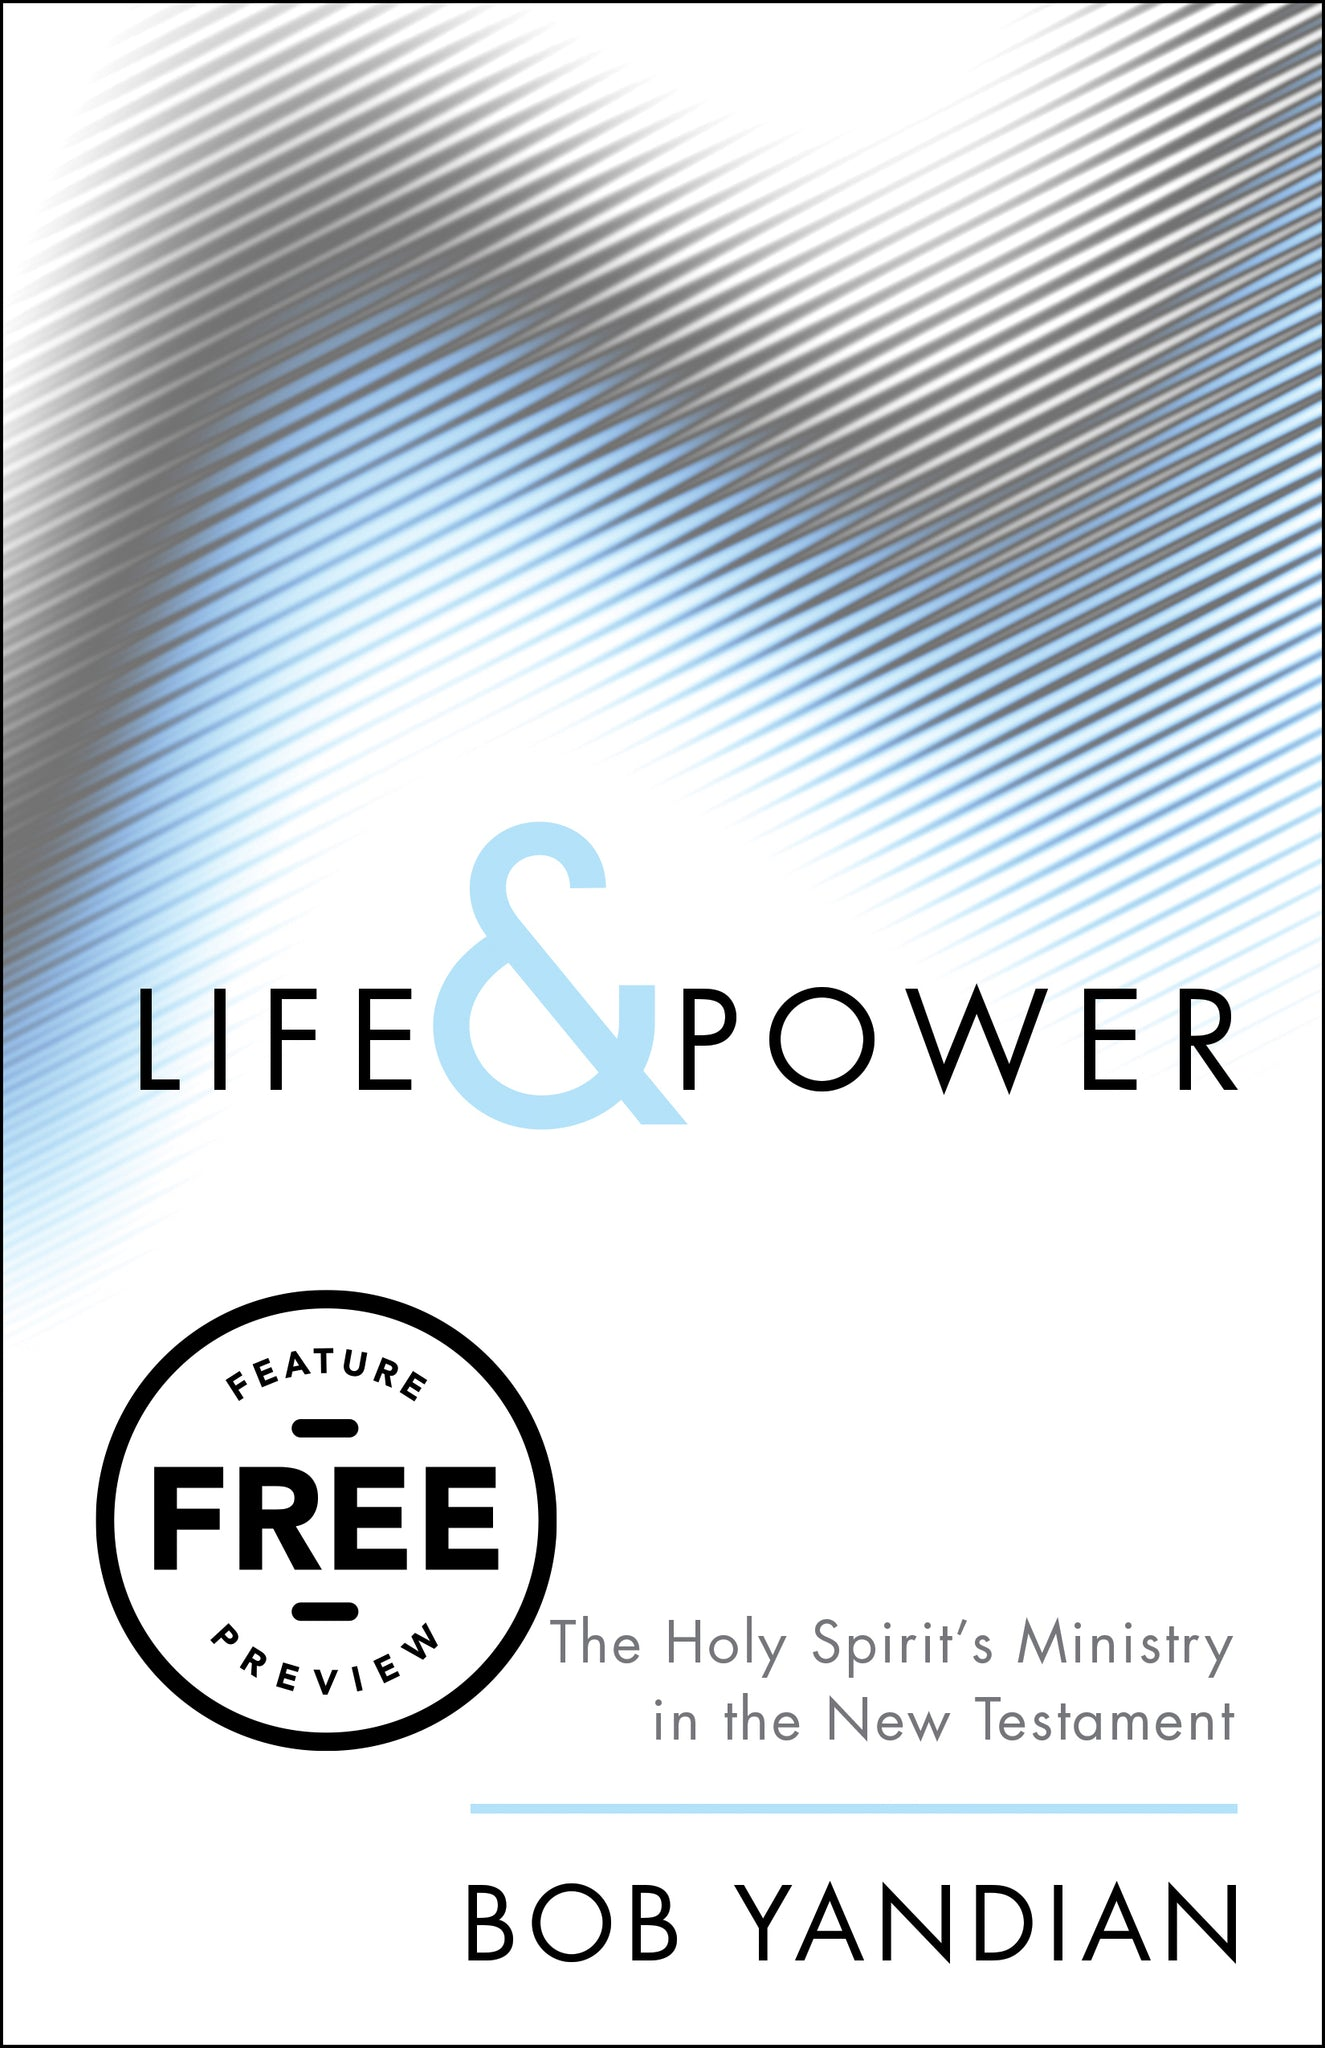 Life & Power Free Feature Message (PDF Download)